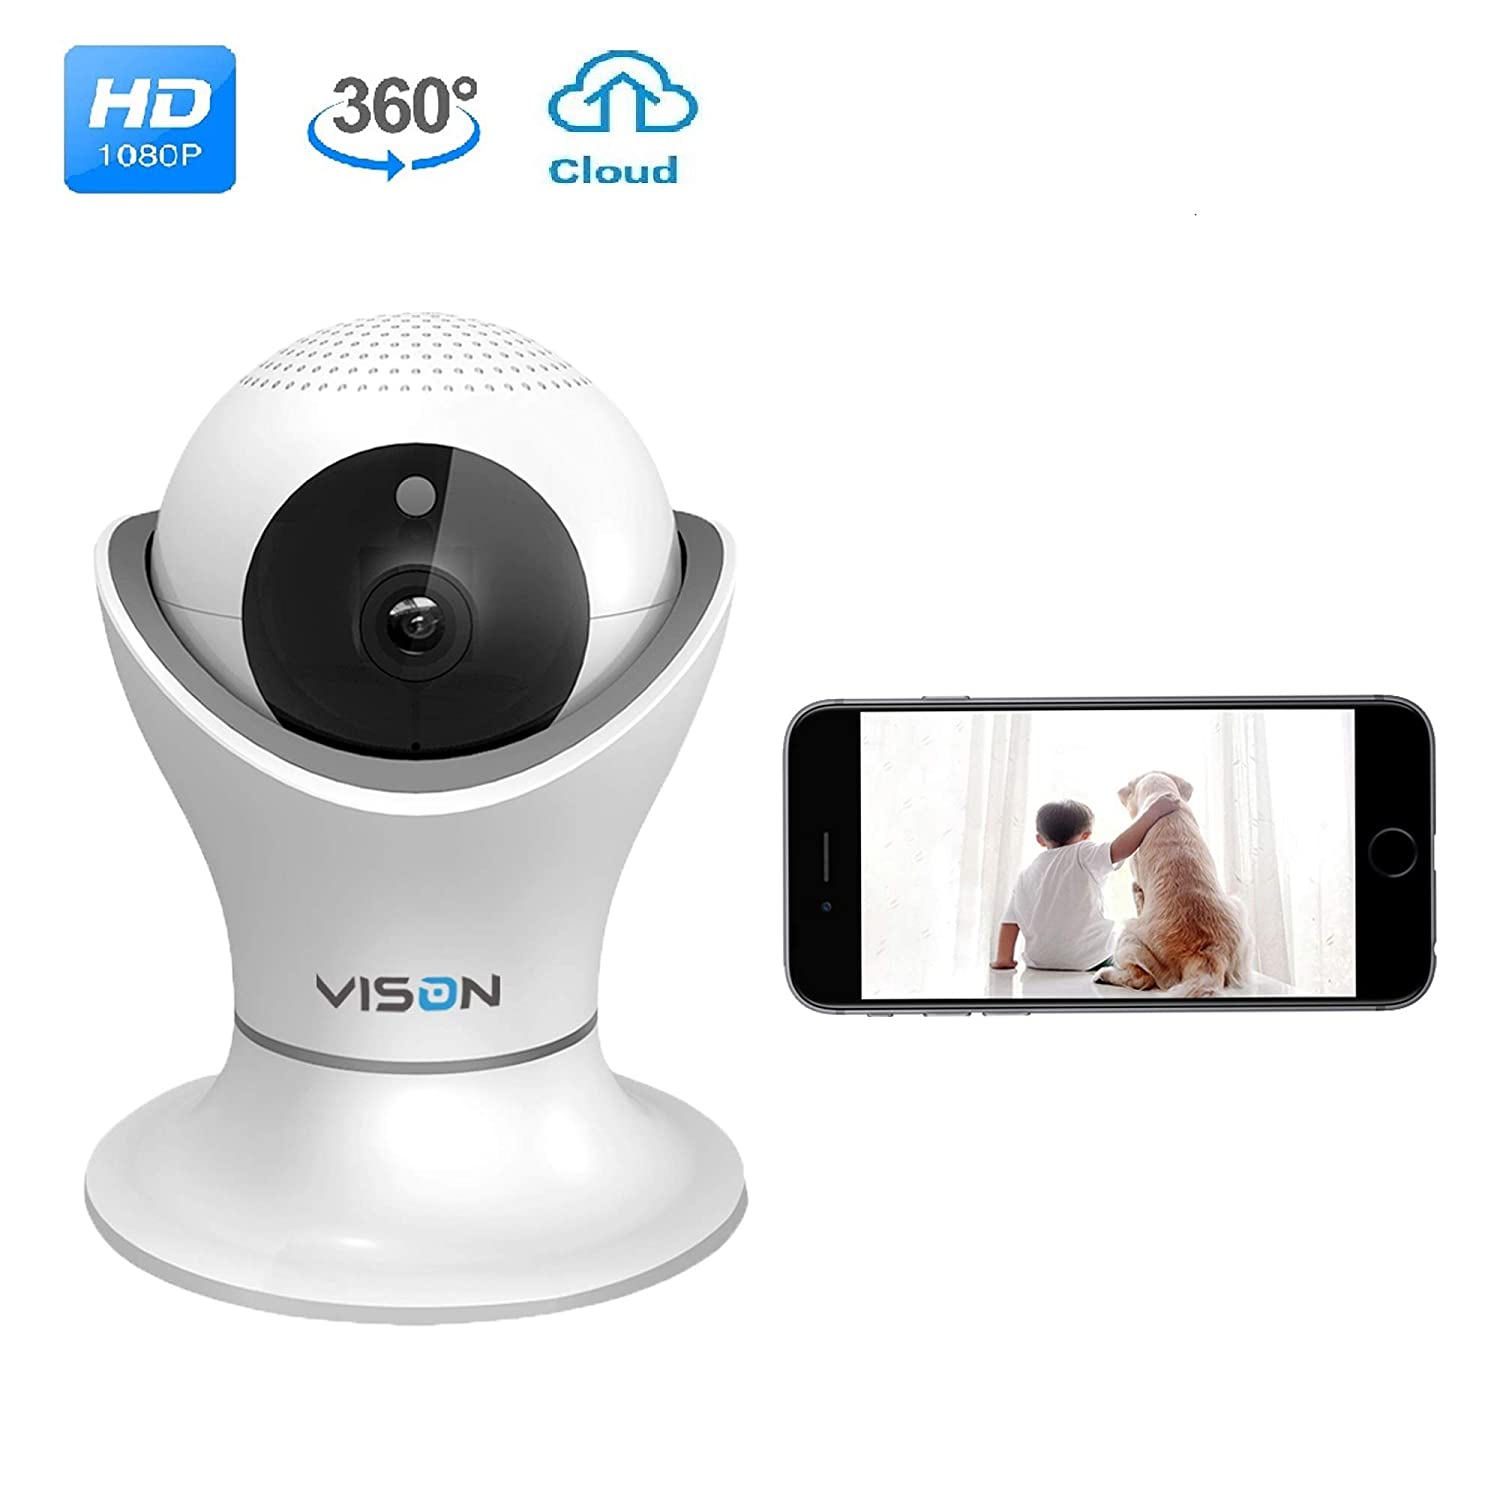 362279b8efd VINSION 1080p Wireless WiFi IP Camera with 3D Navigation Panorama